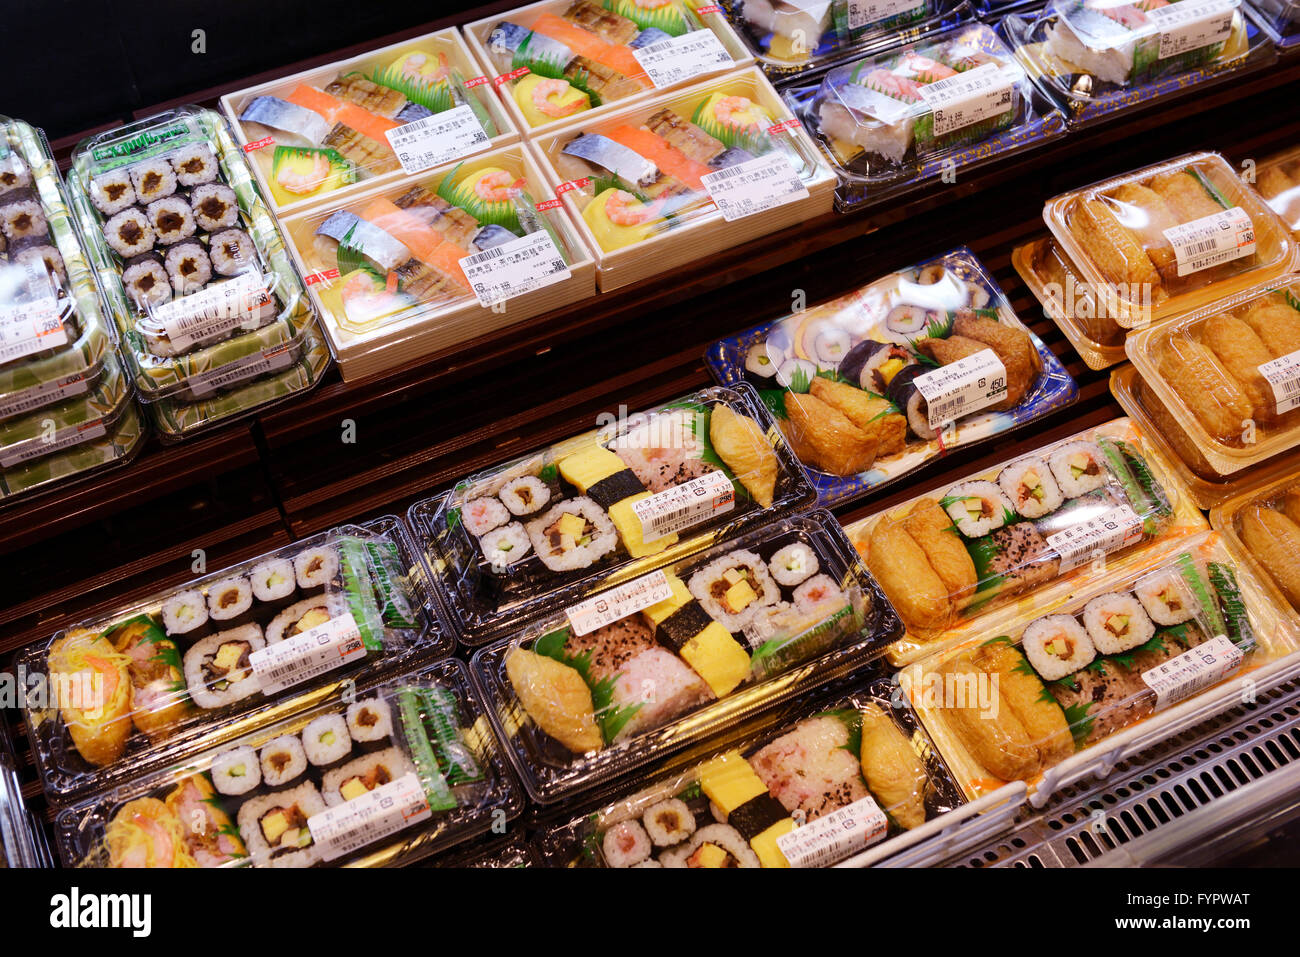 Packaged sushi rolls, convenience food in a Japanese supermarket, Tokyo, Japan - Stock Image